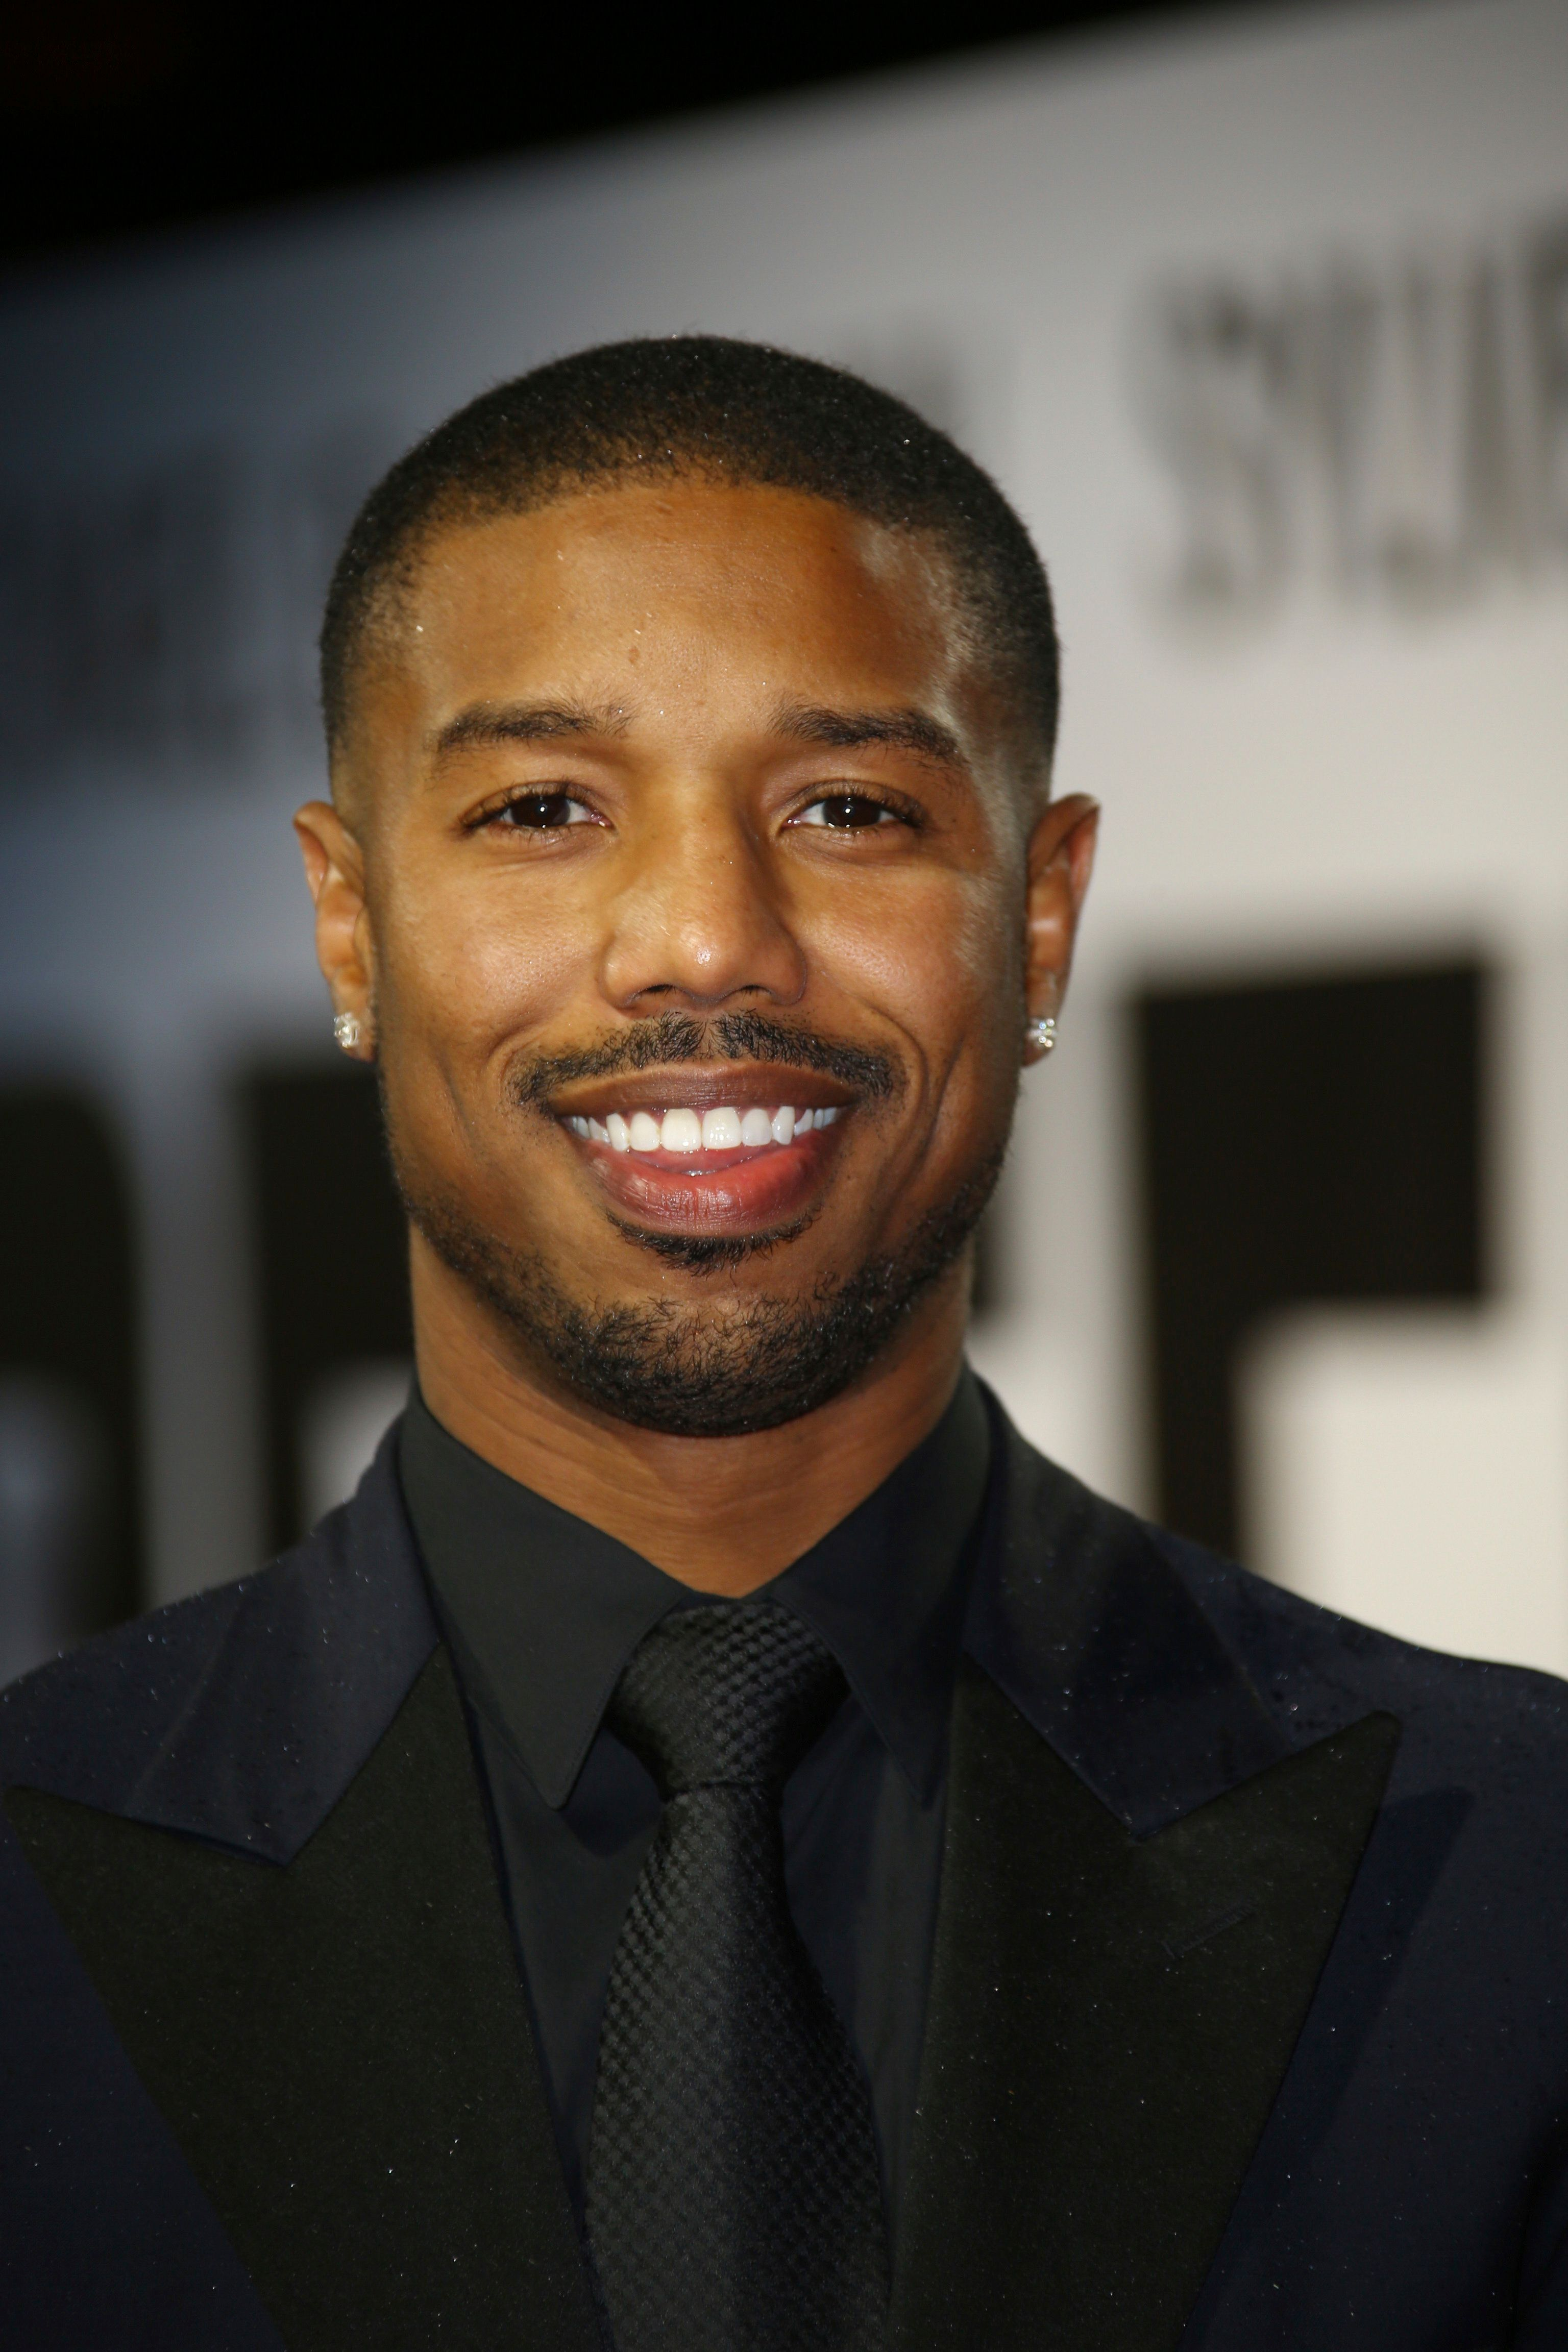 Michael B. Jordan poses for photographers upon arrival at the premiere of the film 'Creed II' in central London, Wednesday, Nov. 28, 2018. (Photo by Joel C Ryan/Invision/AP)